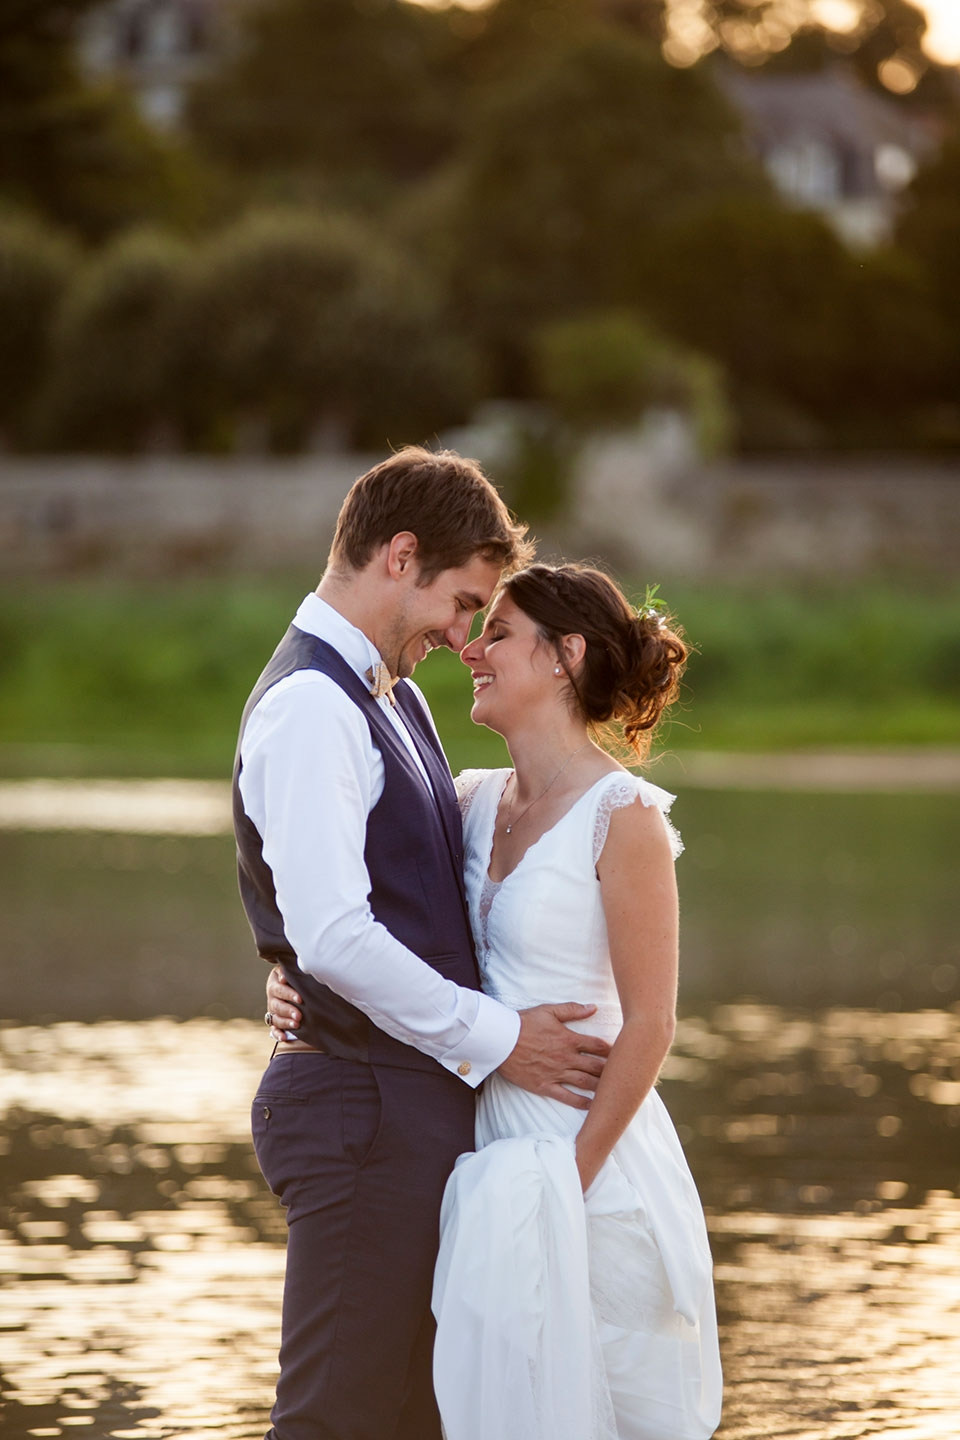 particuliers-evenements-mariage-oui-elise&quentin-79